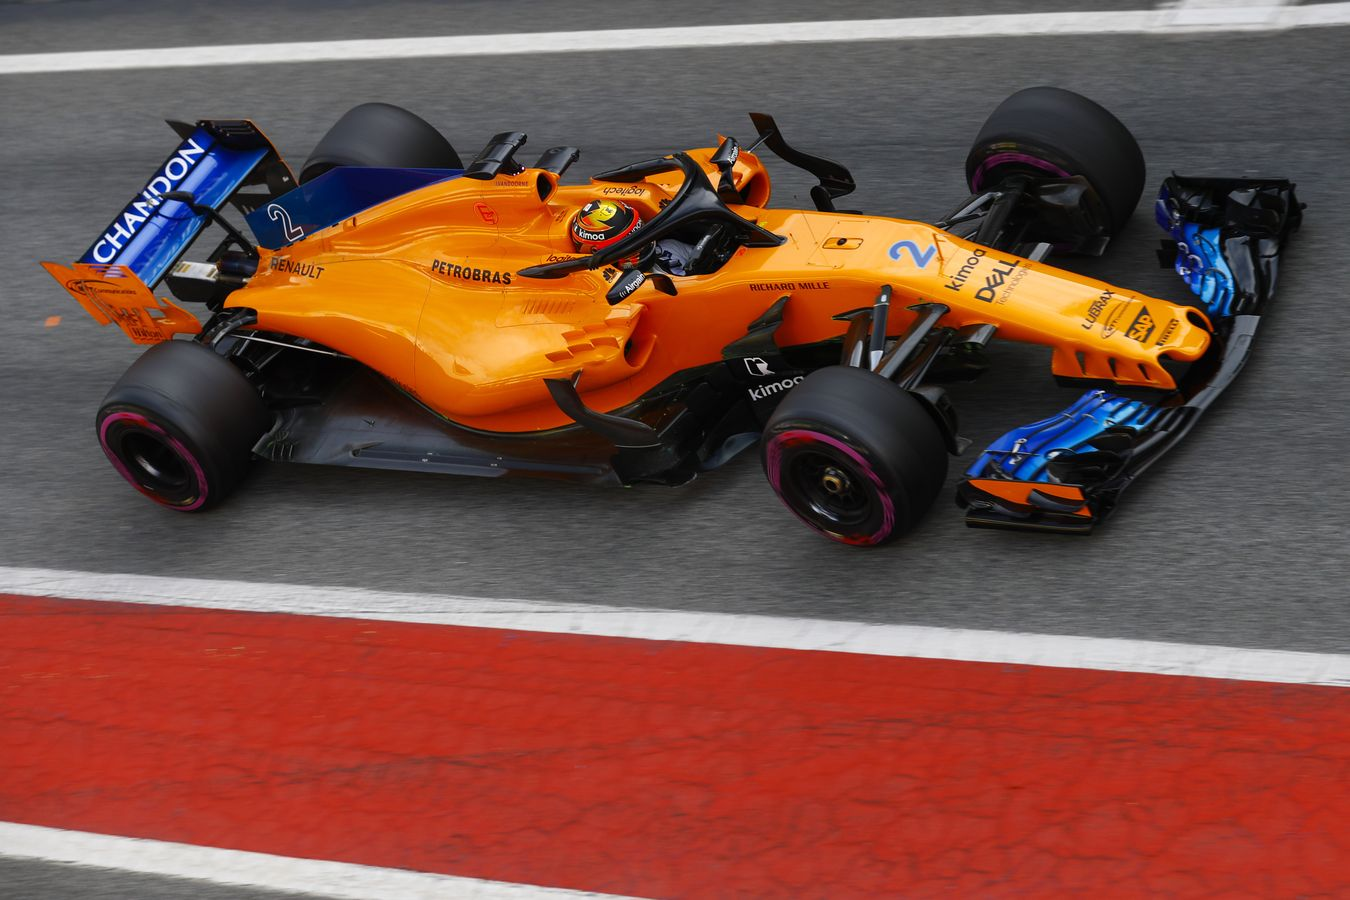 McLaren Formula 1 - Barcelona Test 2: Day 3